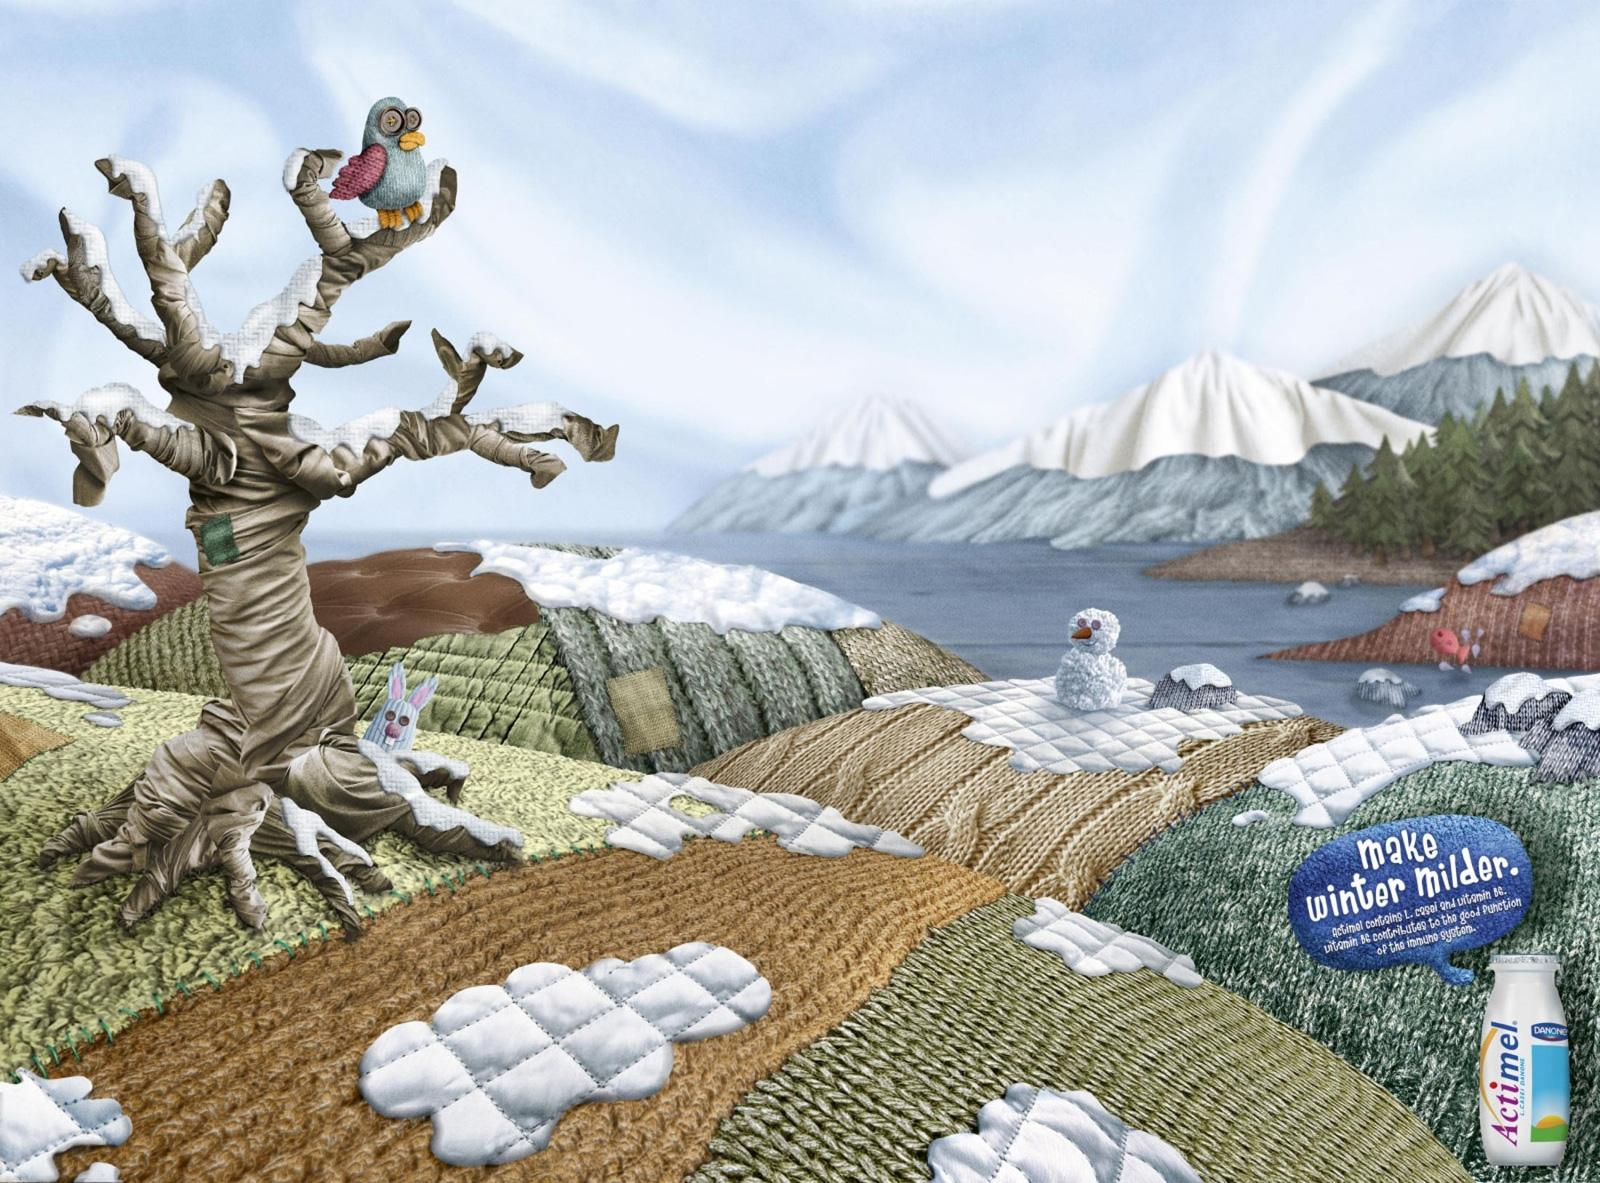 Danone Print Ad -  The Winter Is Milder